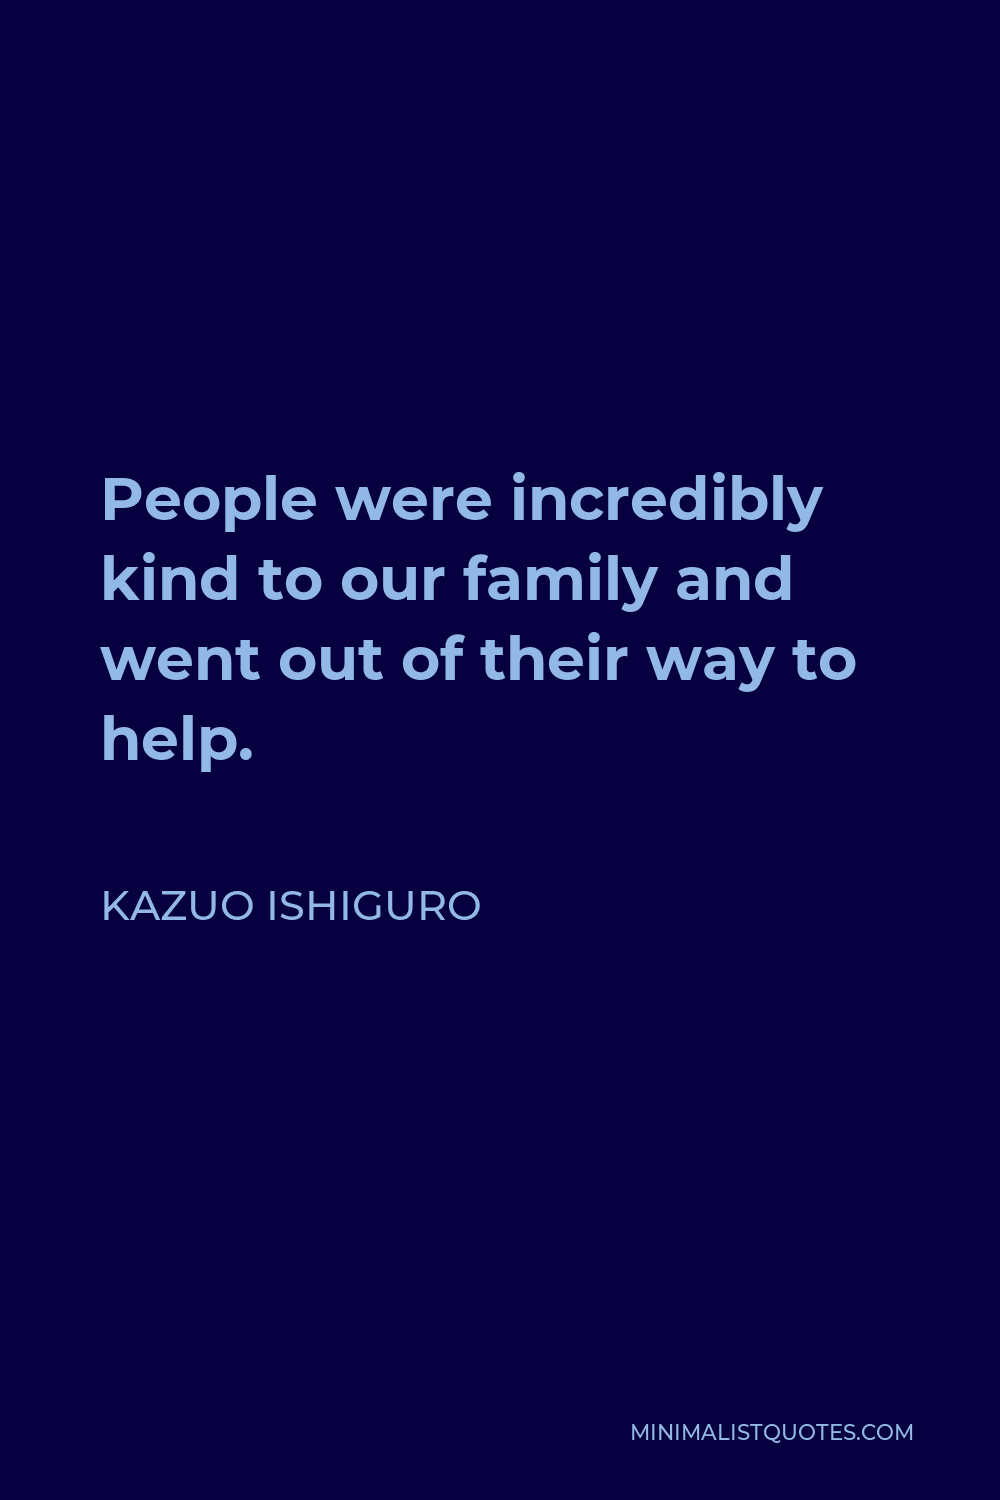 Kazuo Ishiguro Quote - People were incredibly kind to our family and went out of their way to help.